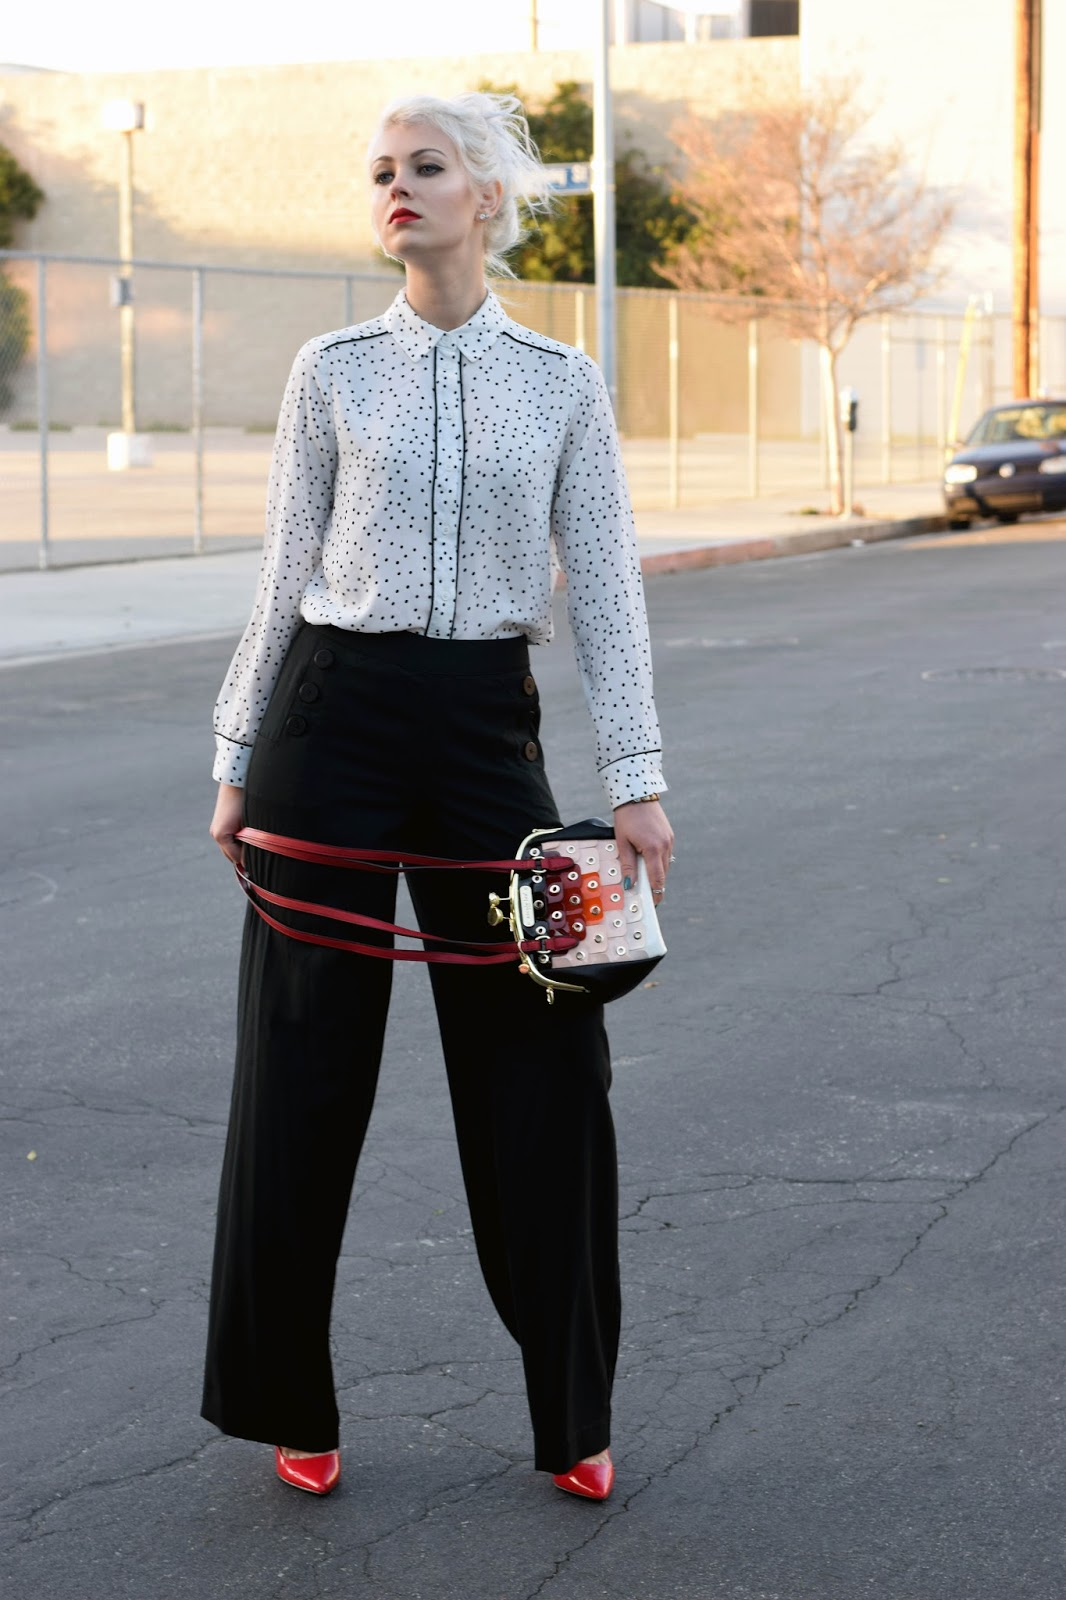 nicole lee, who what wear, target style